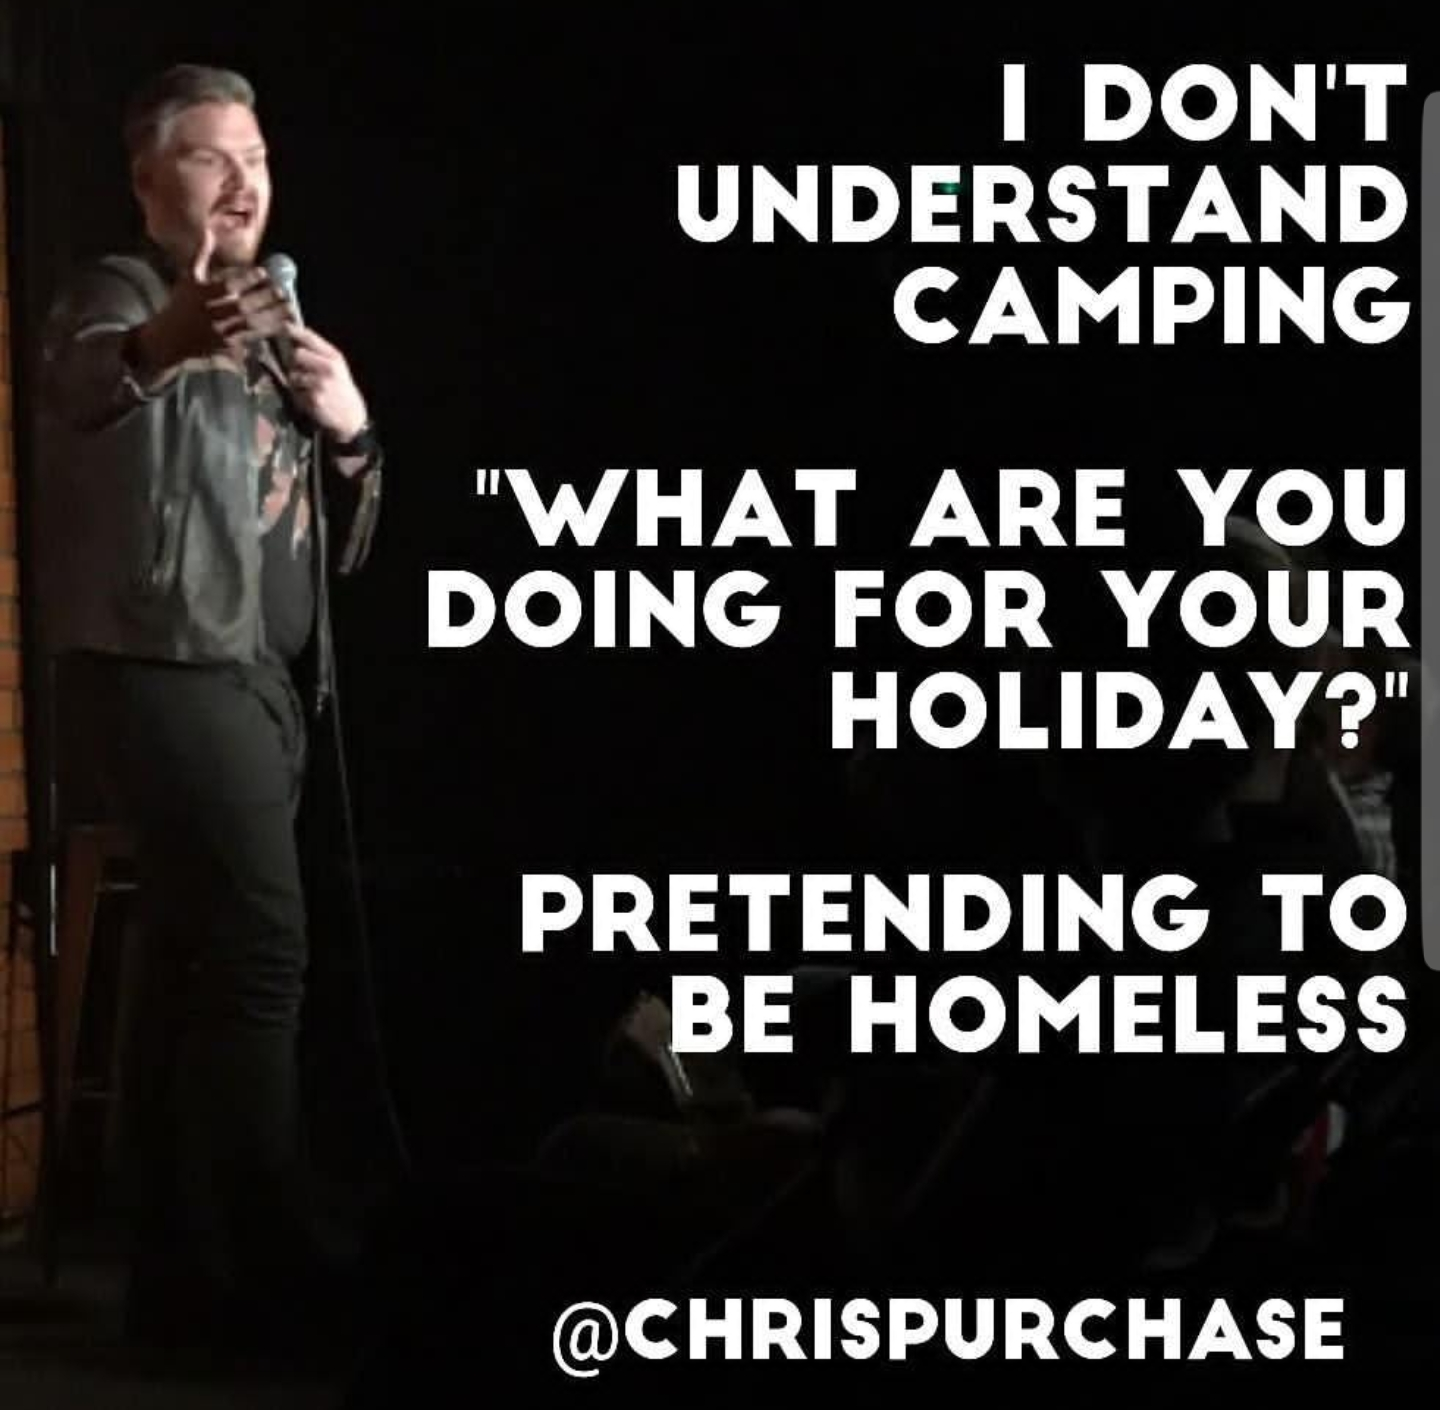 Chris Purchase on Camping